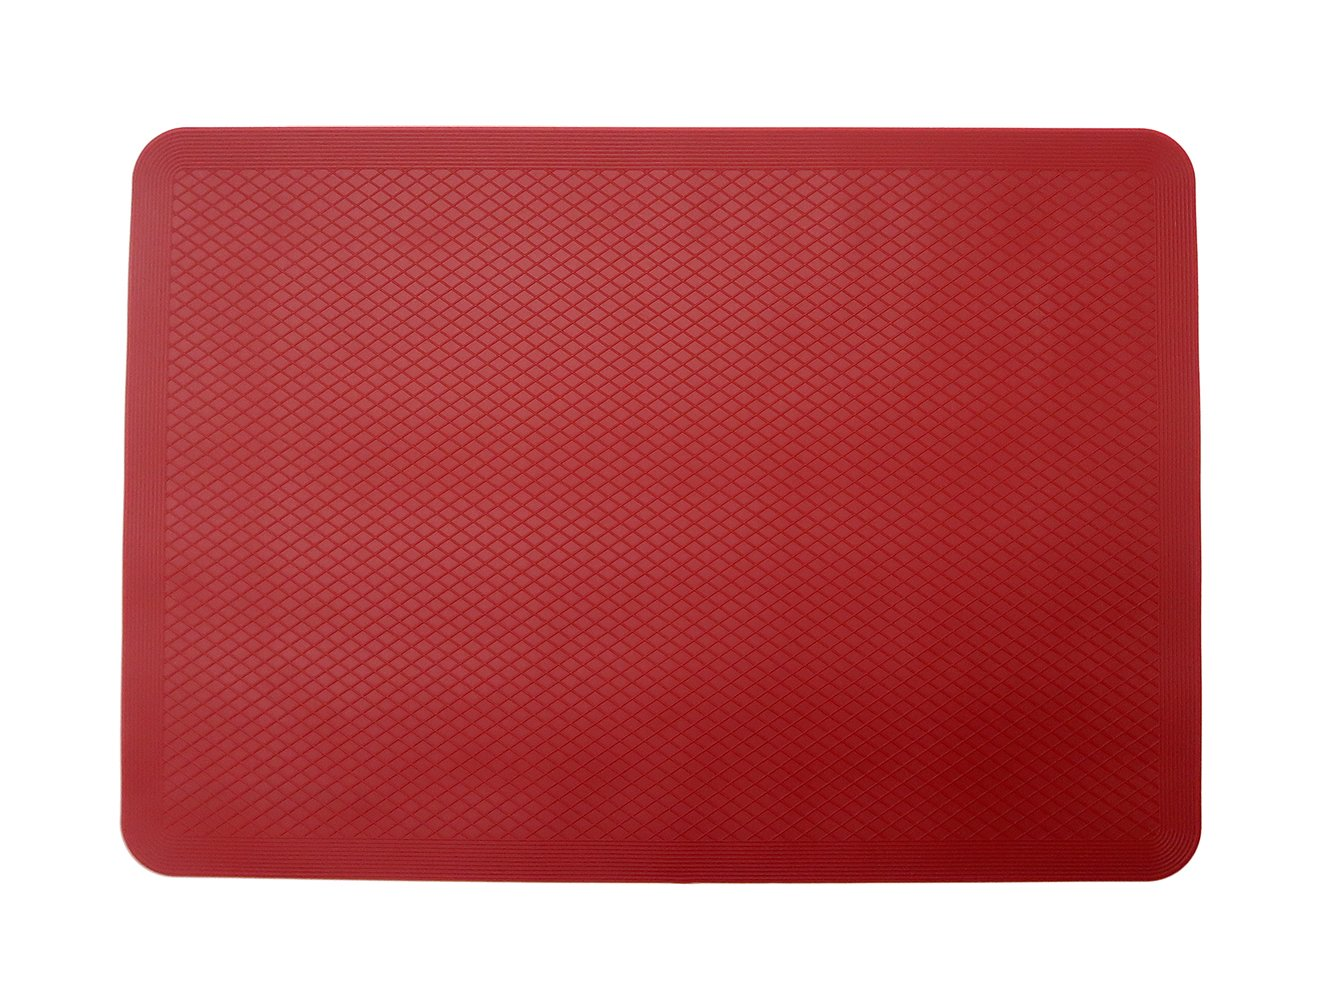 Silicone Baking Mat - Non Stick Reusable Sheet for Cooking and Crafts Master Chef